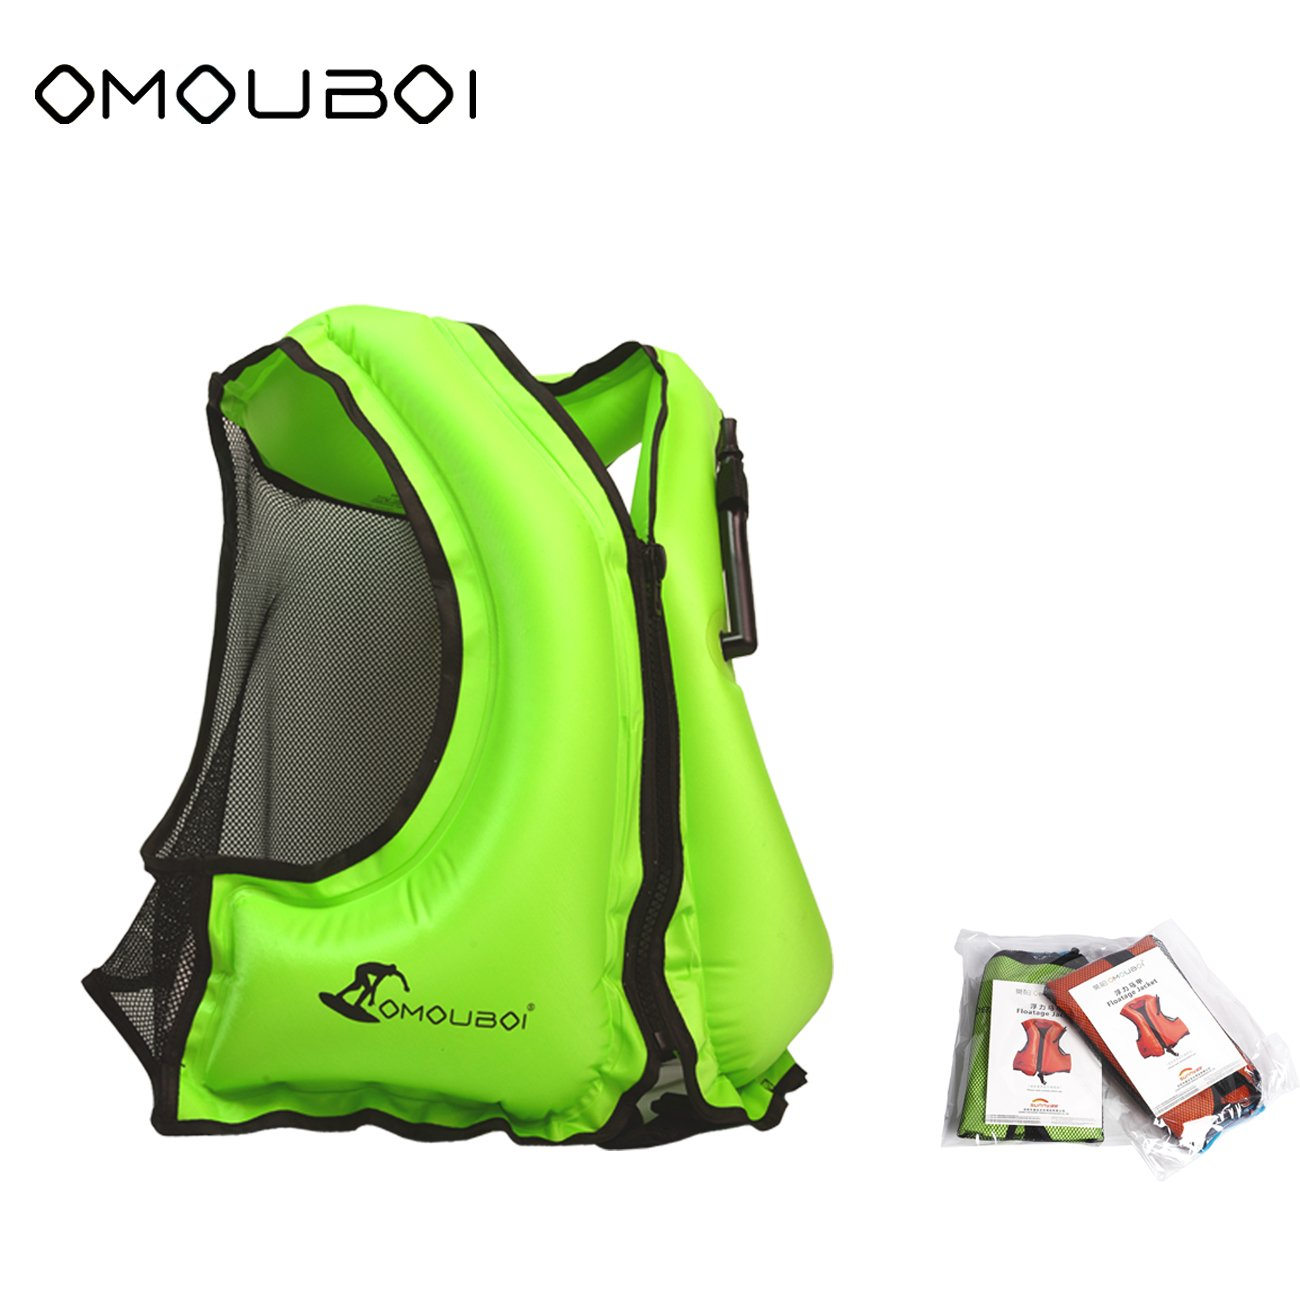 OMOUBOI Inflatable Life Jacket Adult Snorkel Vest Life Vest for Swimming&Diving Suitable for 80-220 lbs (Green)